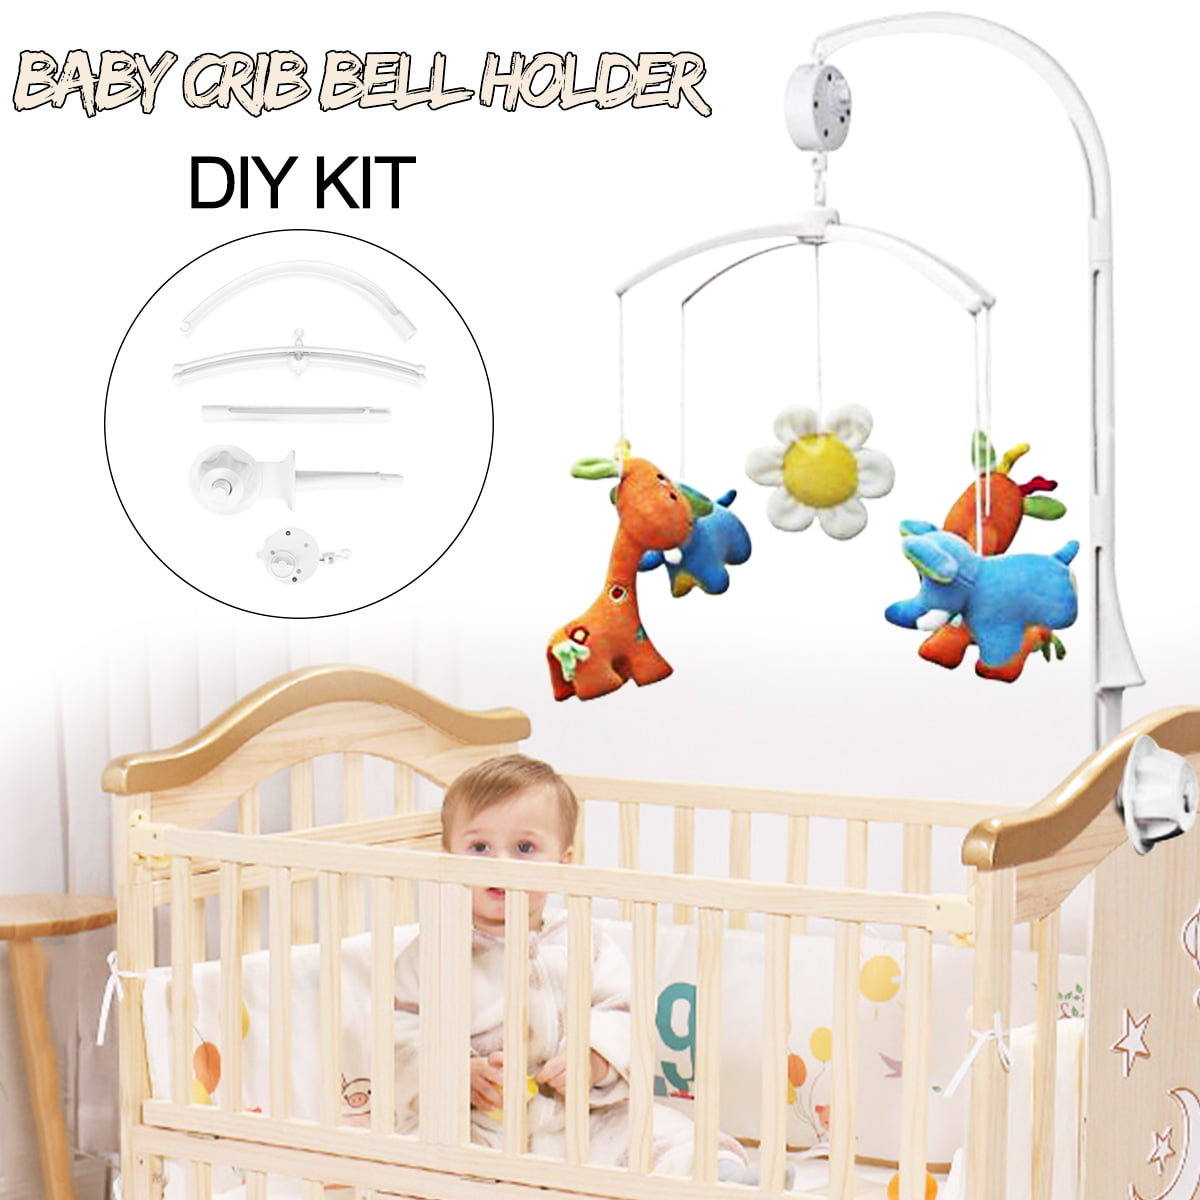 Baby Kids Crib Mobile Bed Bell Toy Holder Arm Bracket 360 Rotate + Wind-up Music Box by